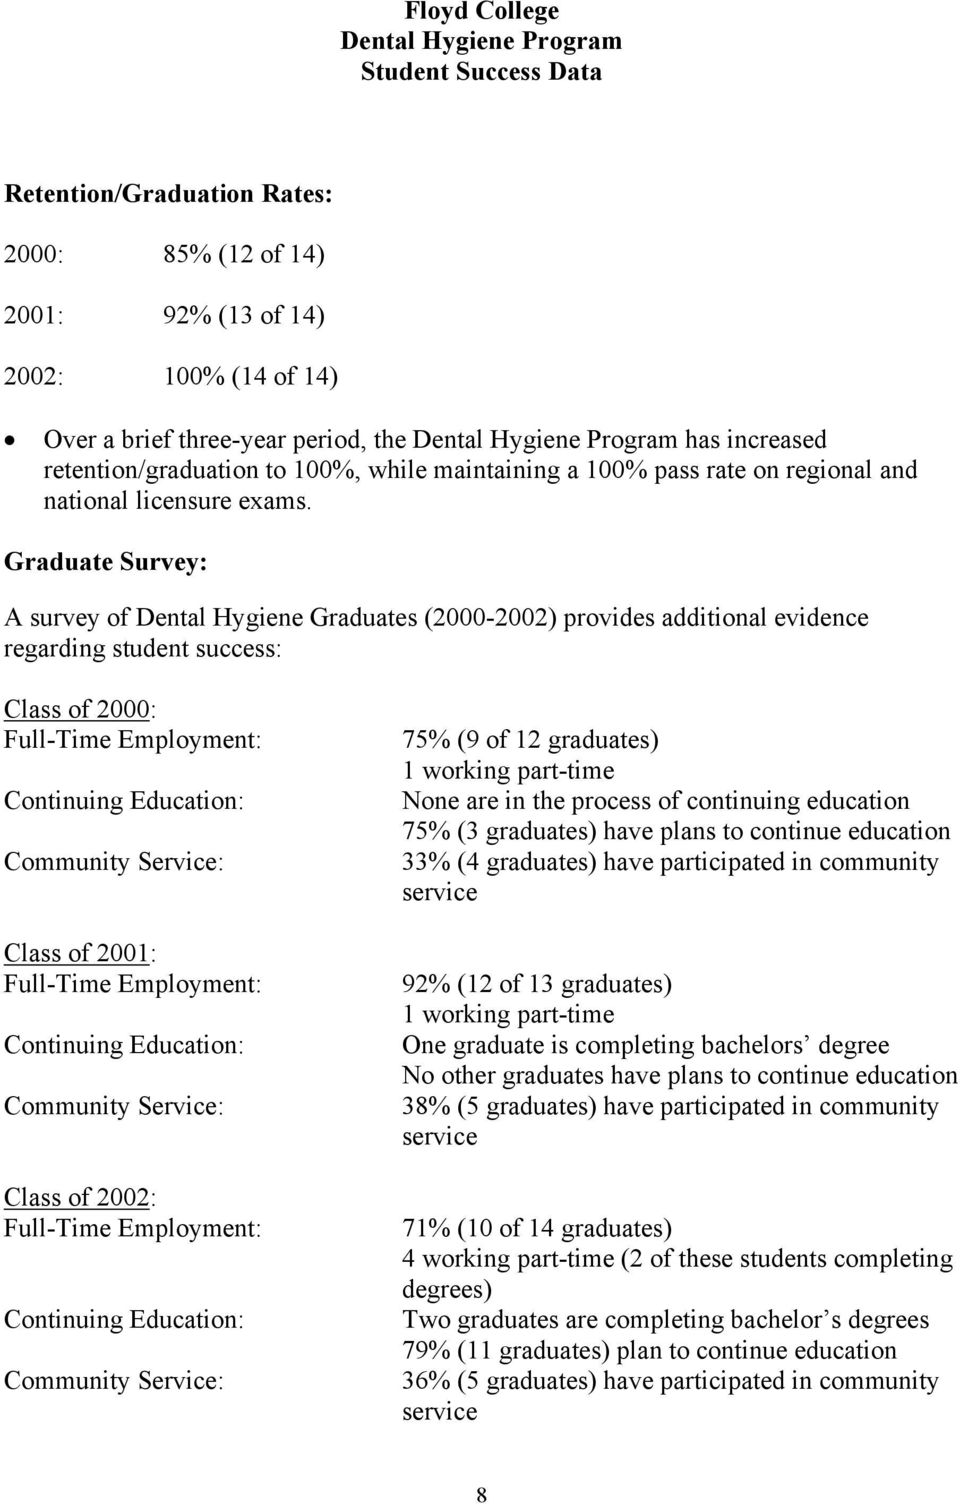 Graduate Survey: A survey of Dental Hygiene Graduates (2000-2002) provides additional evidence regarding student success: Class of 2000: Full-Time Employment: Continuing Education: Community Service: